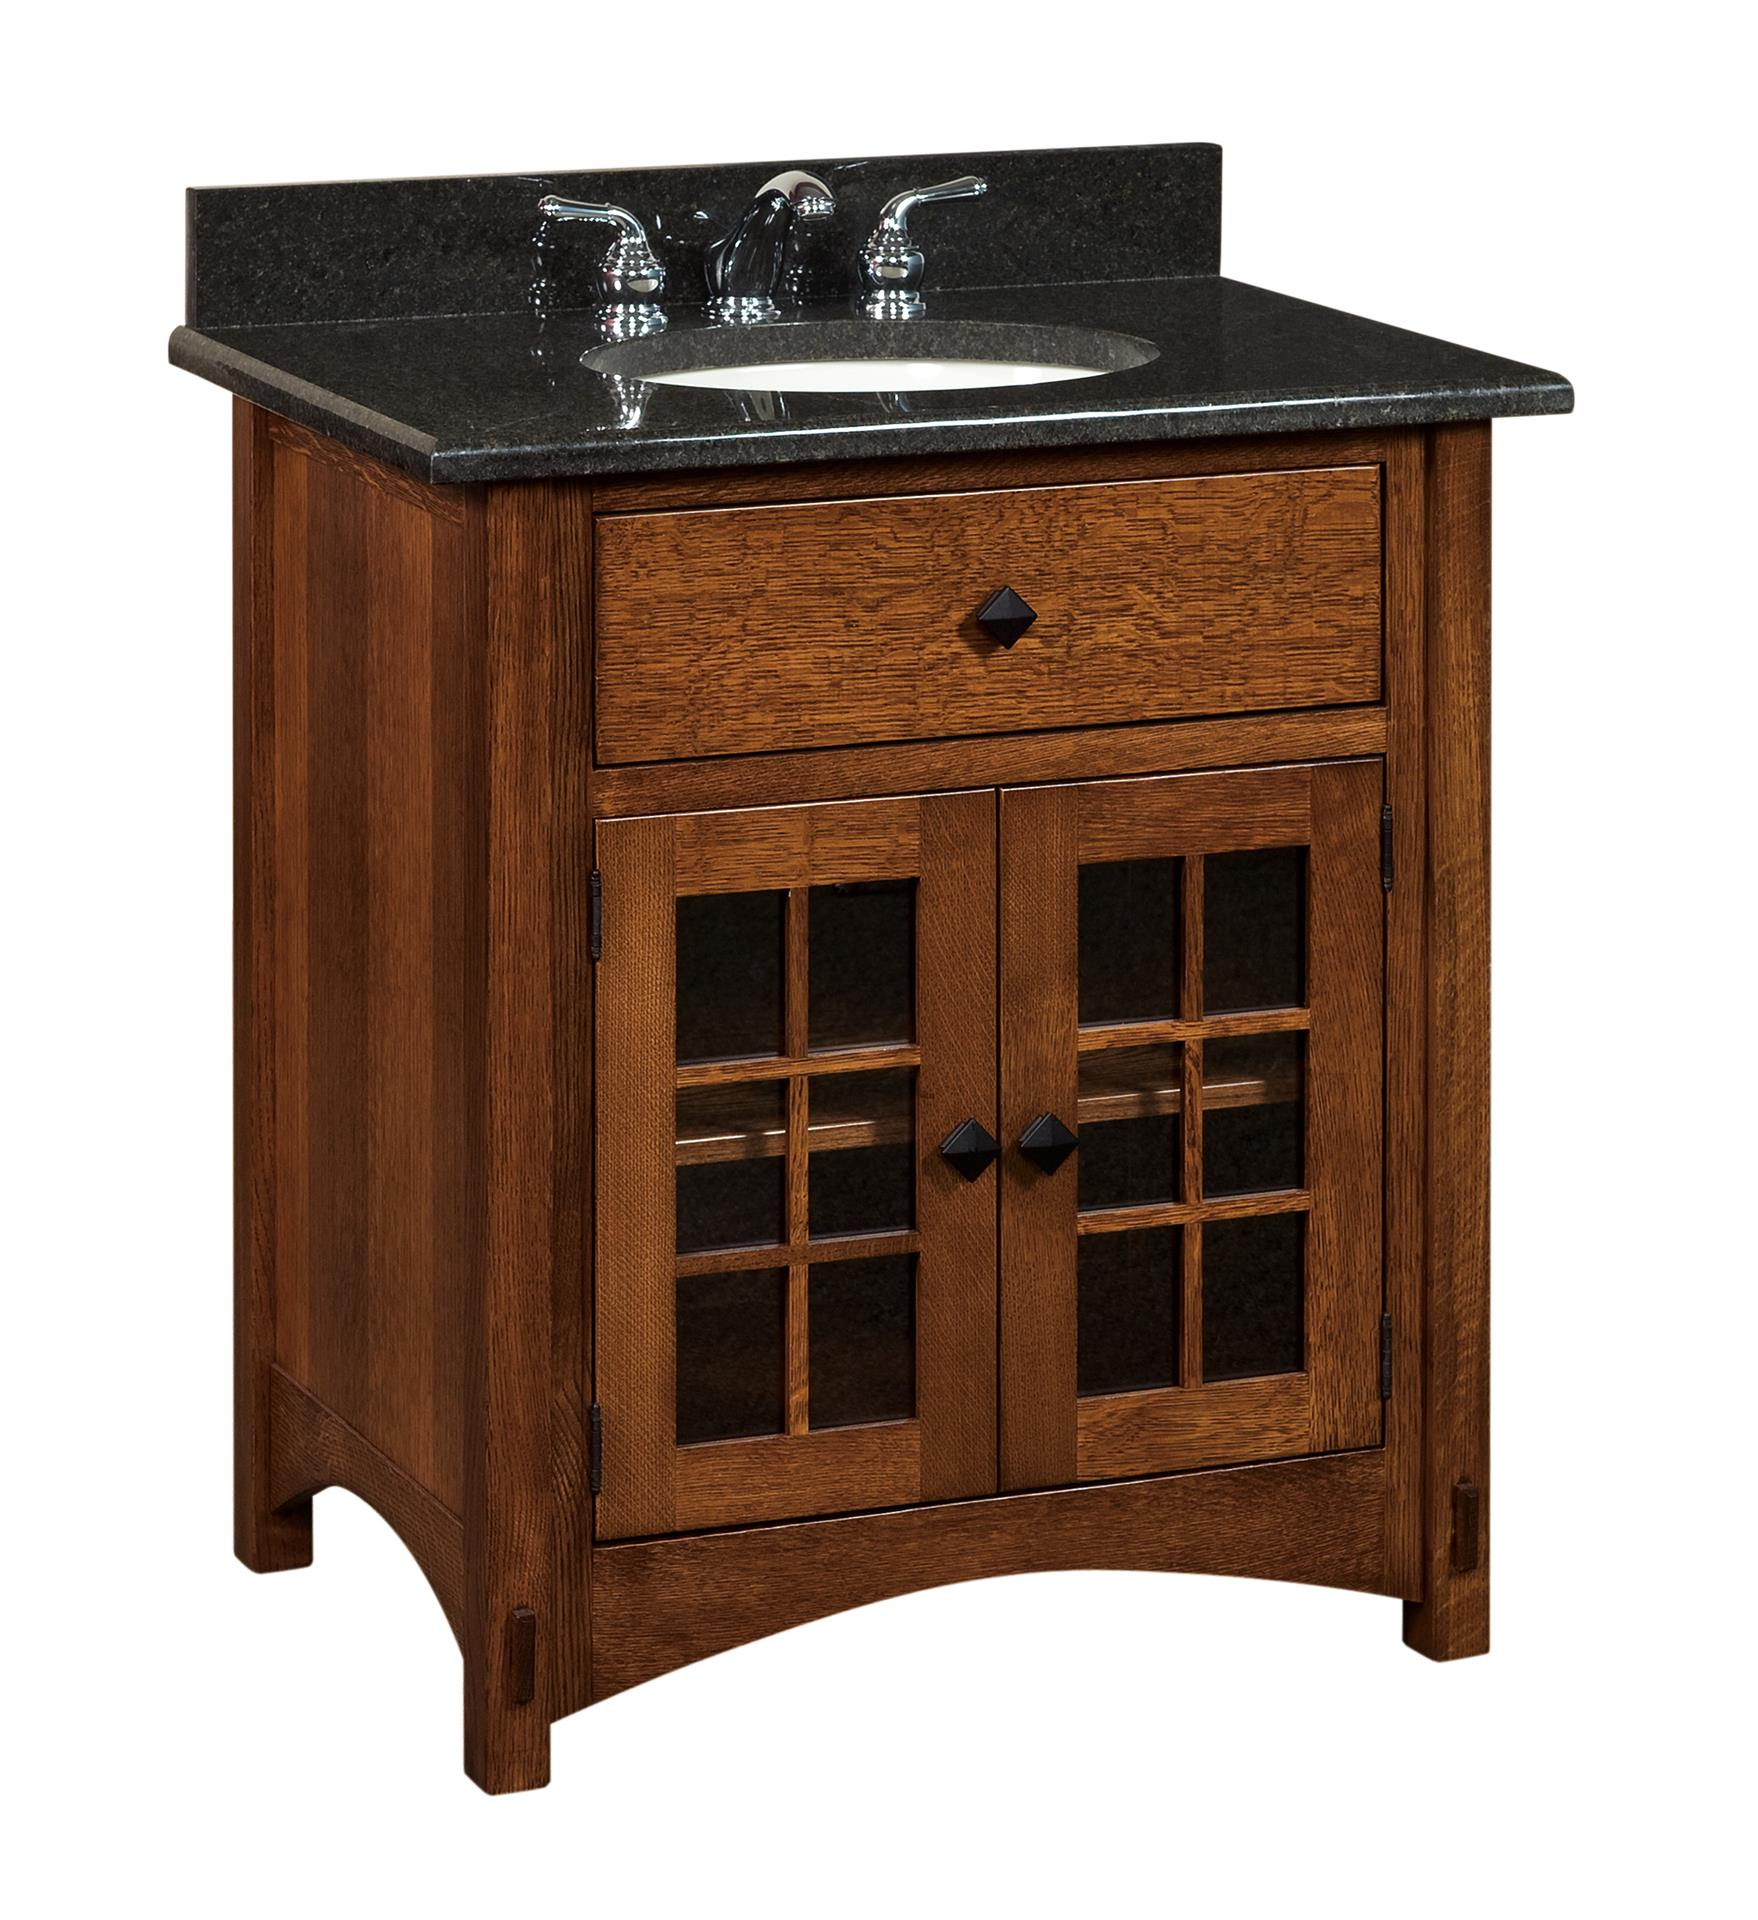 "Cool Amish Bathroom Vanity Solid Wood - 33"" Lucern Mission Sink Console for Unique Mission Style Bathroom Vanity"